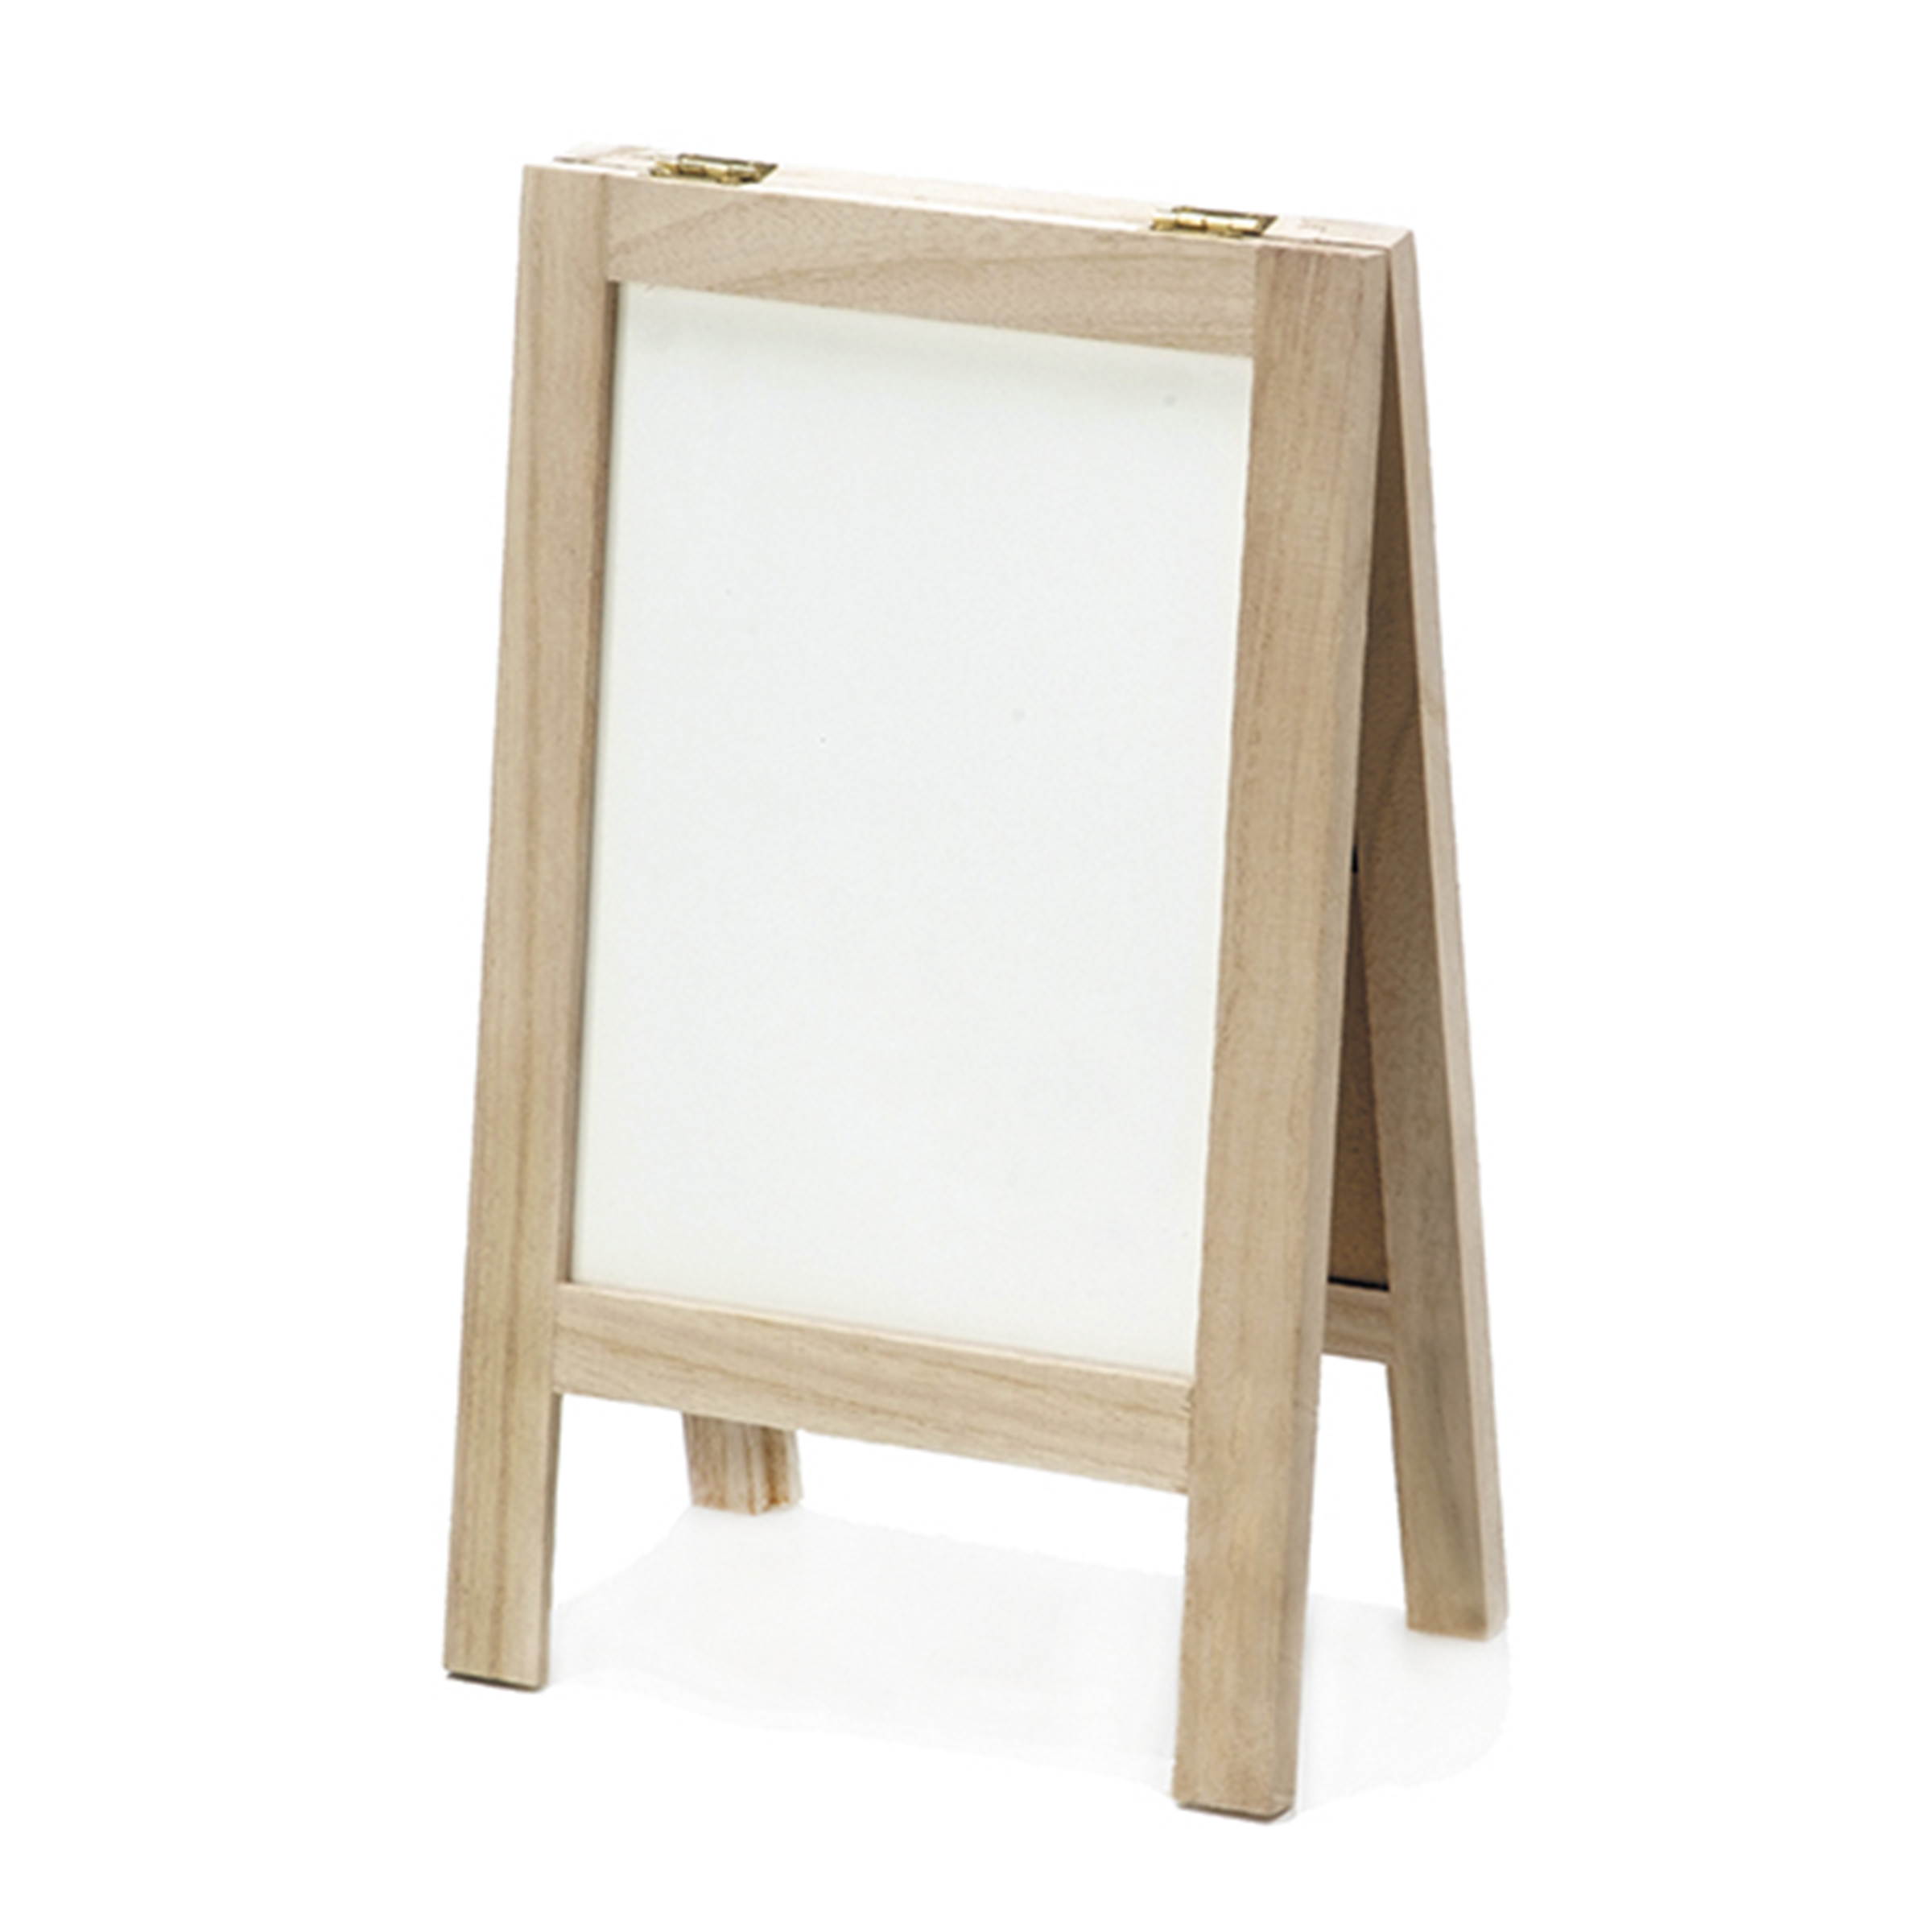 unfinished frame easel double sided - Double Sided Frames